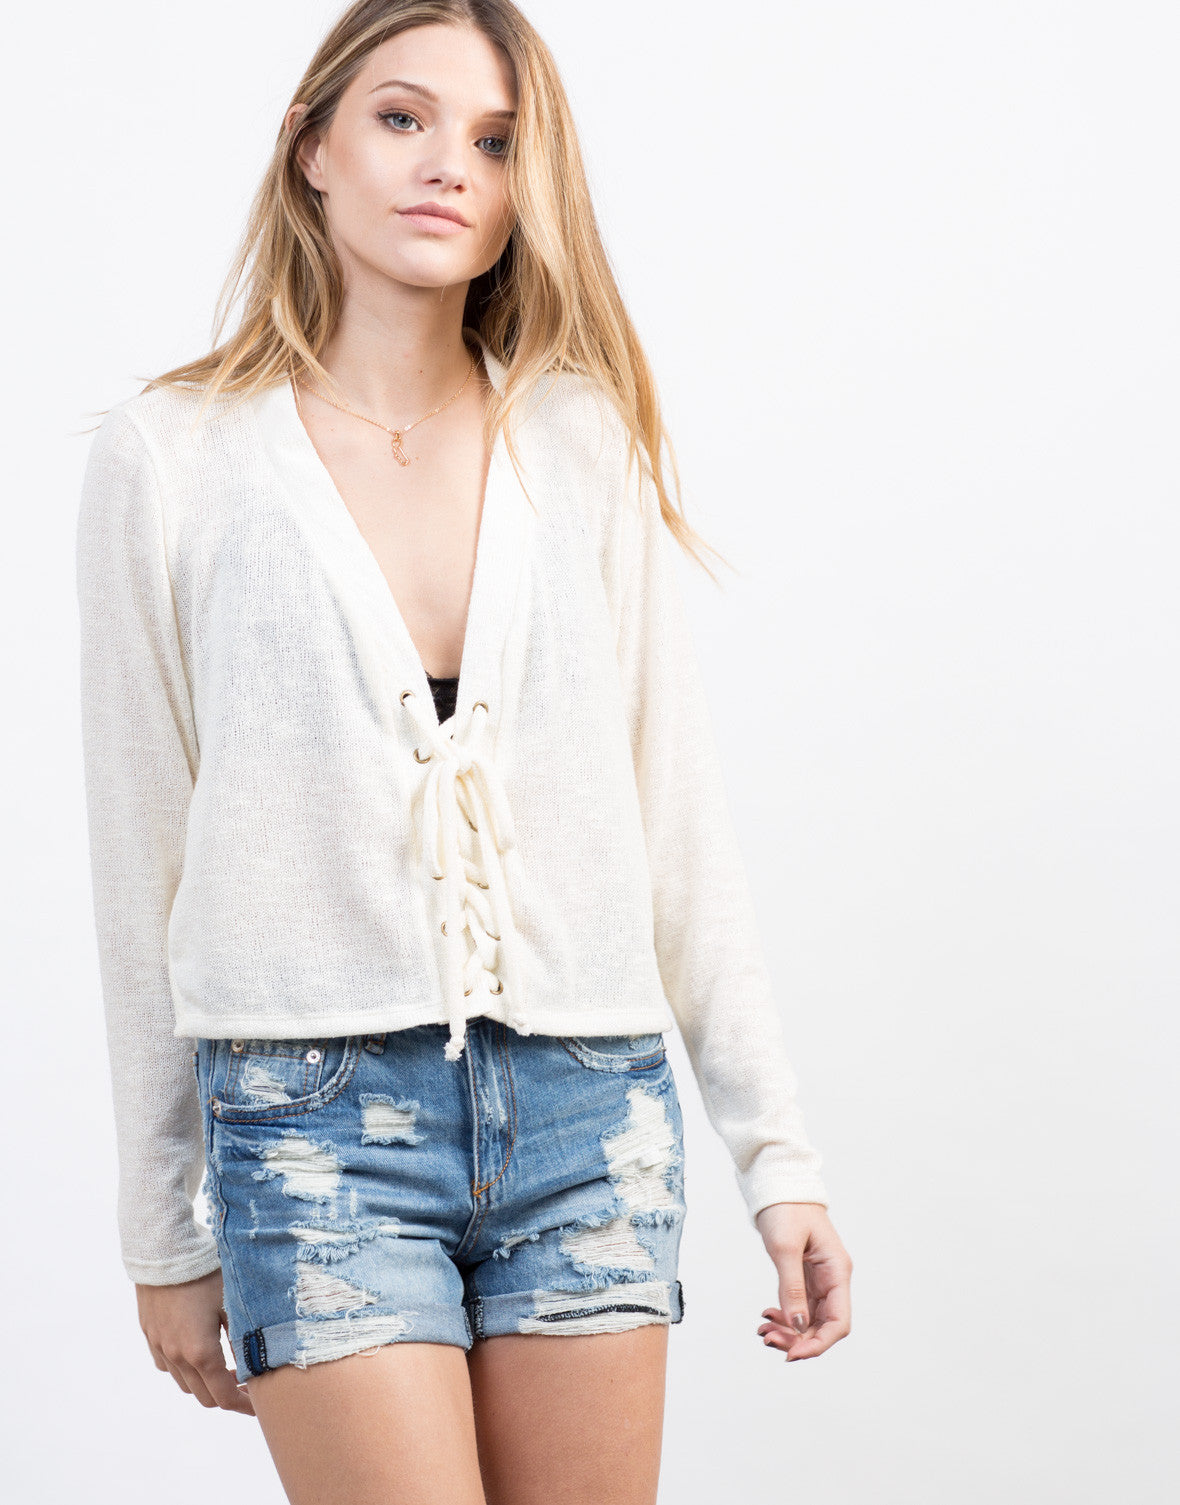 Detail of Knitted Lace-Up Sweater Top